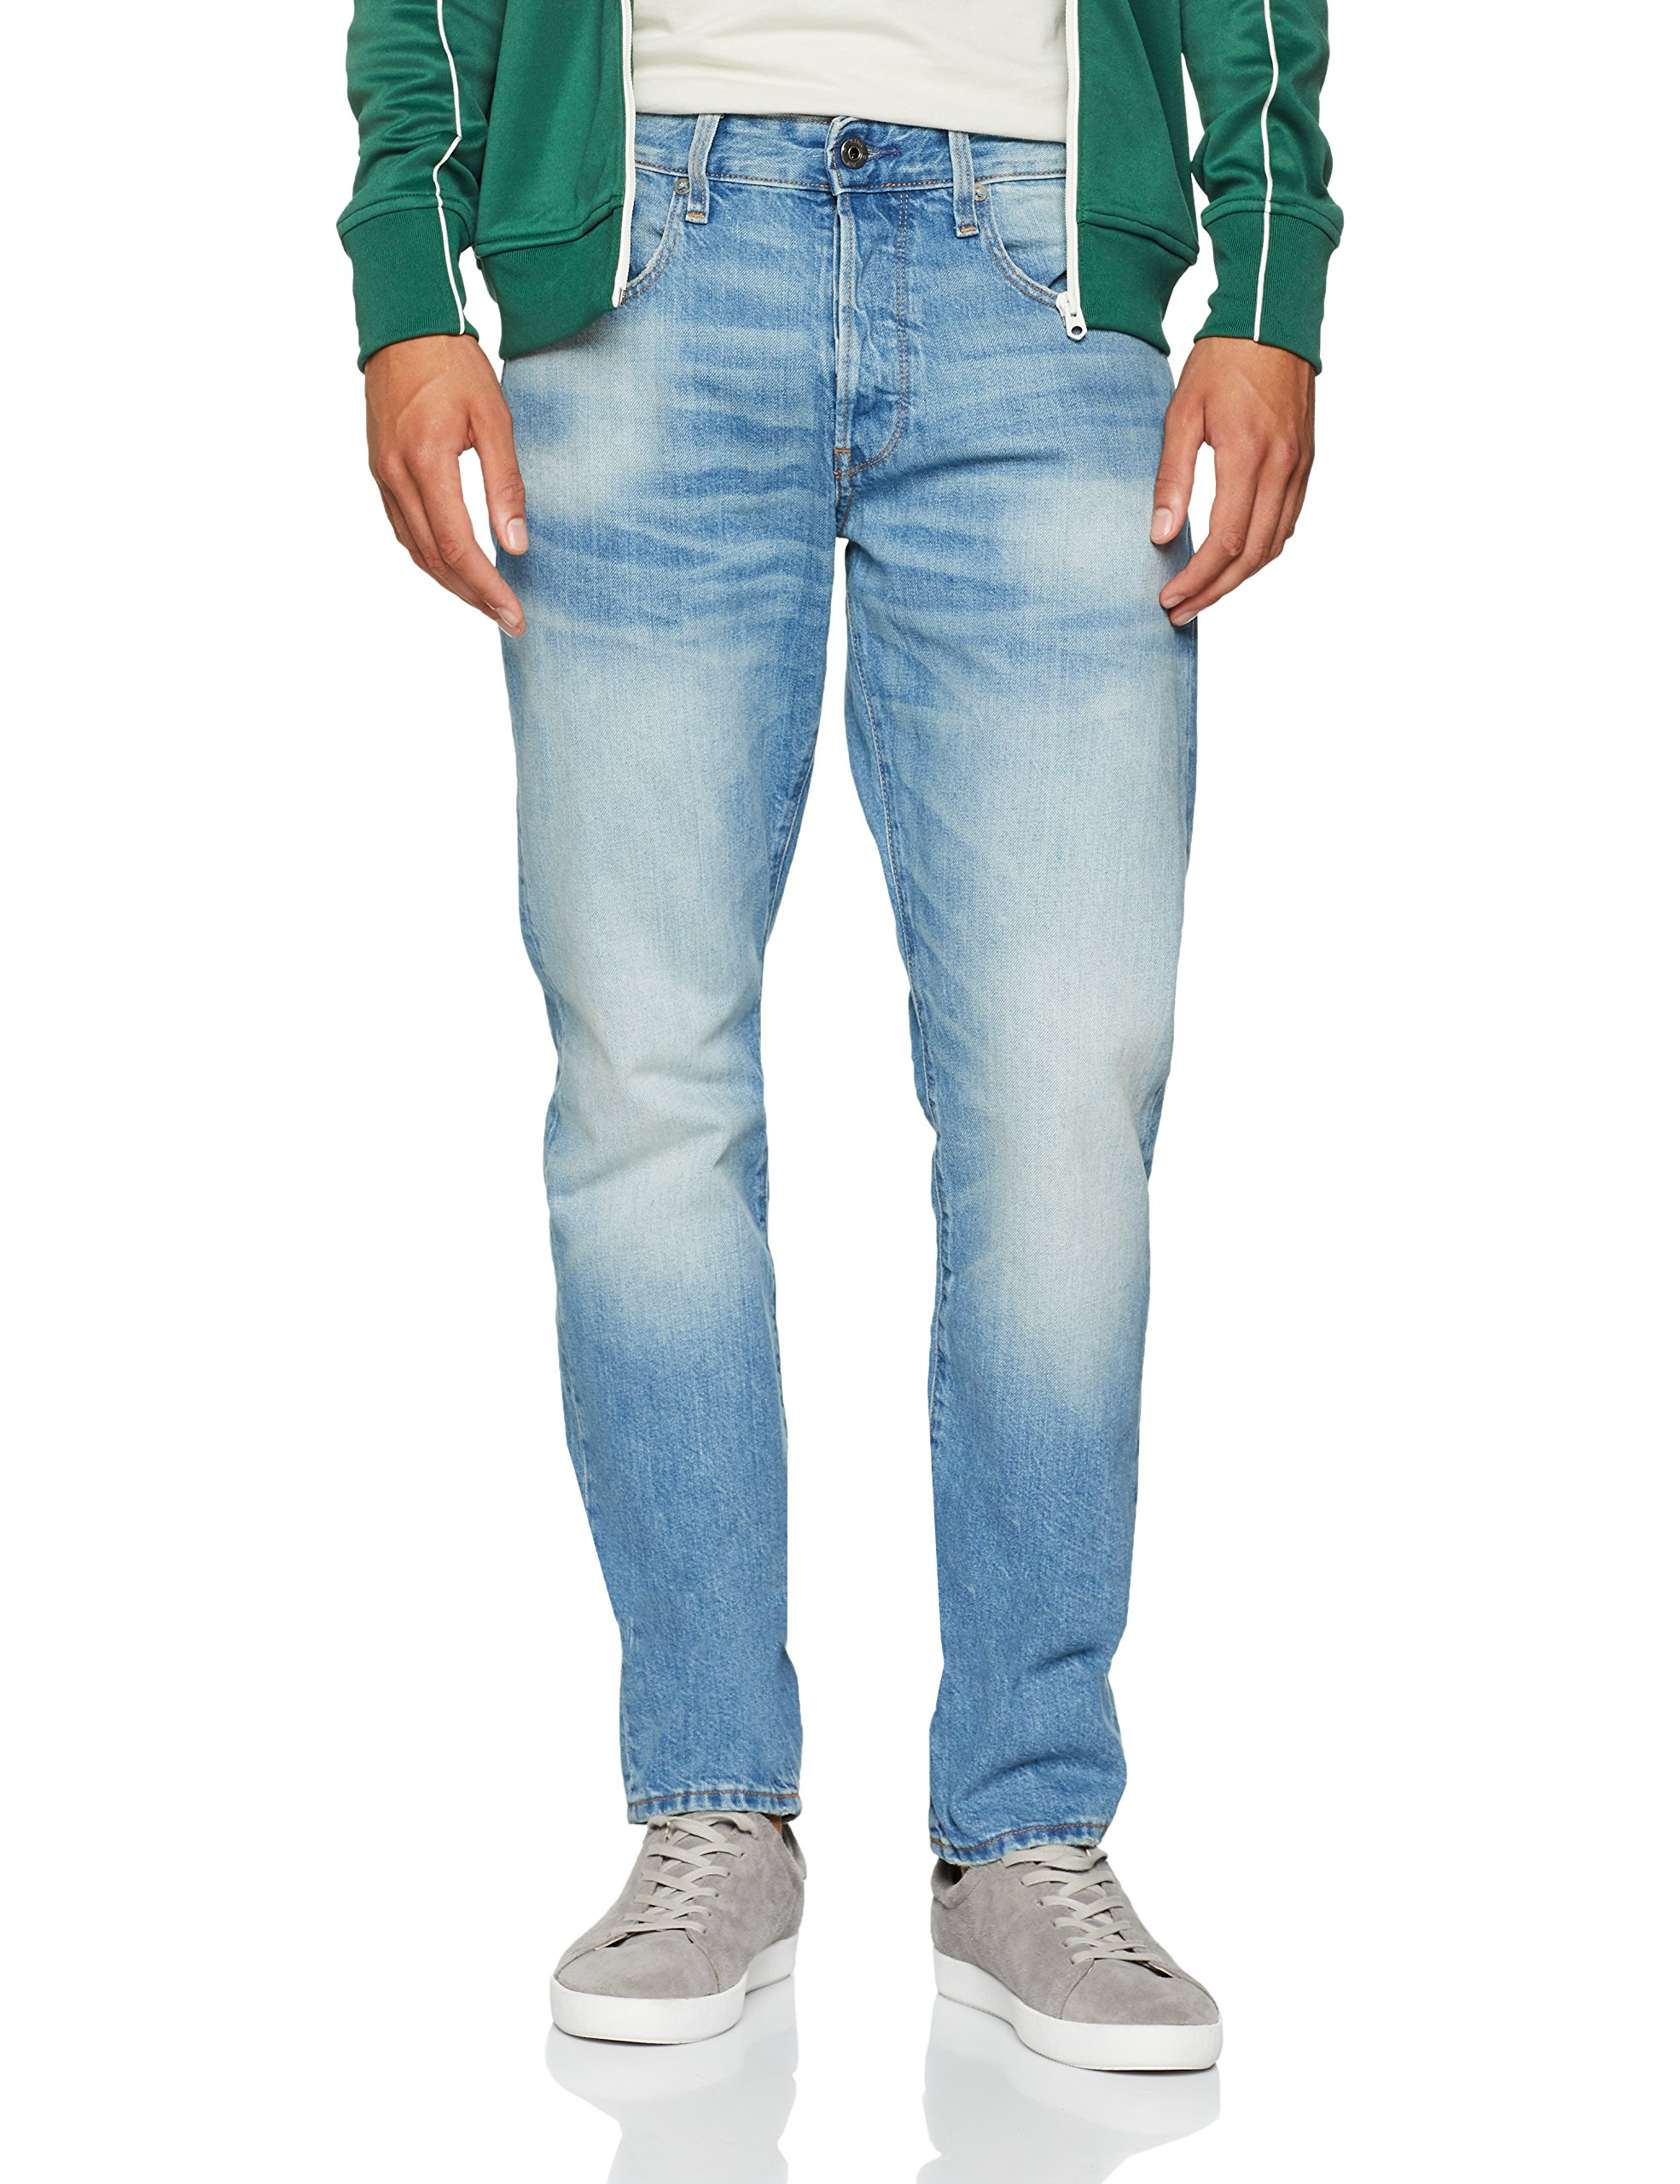 497033w34l Straight JeansBleumedium Raw Vintage Tapered Homme 3301 9299 G Aged star w0kP8On